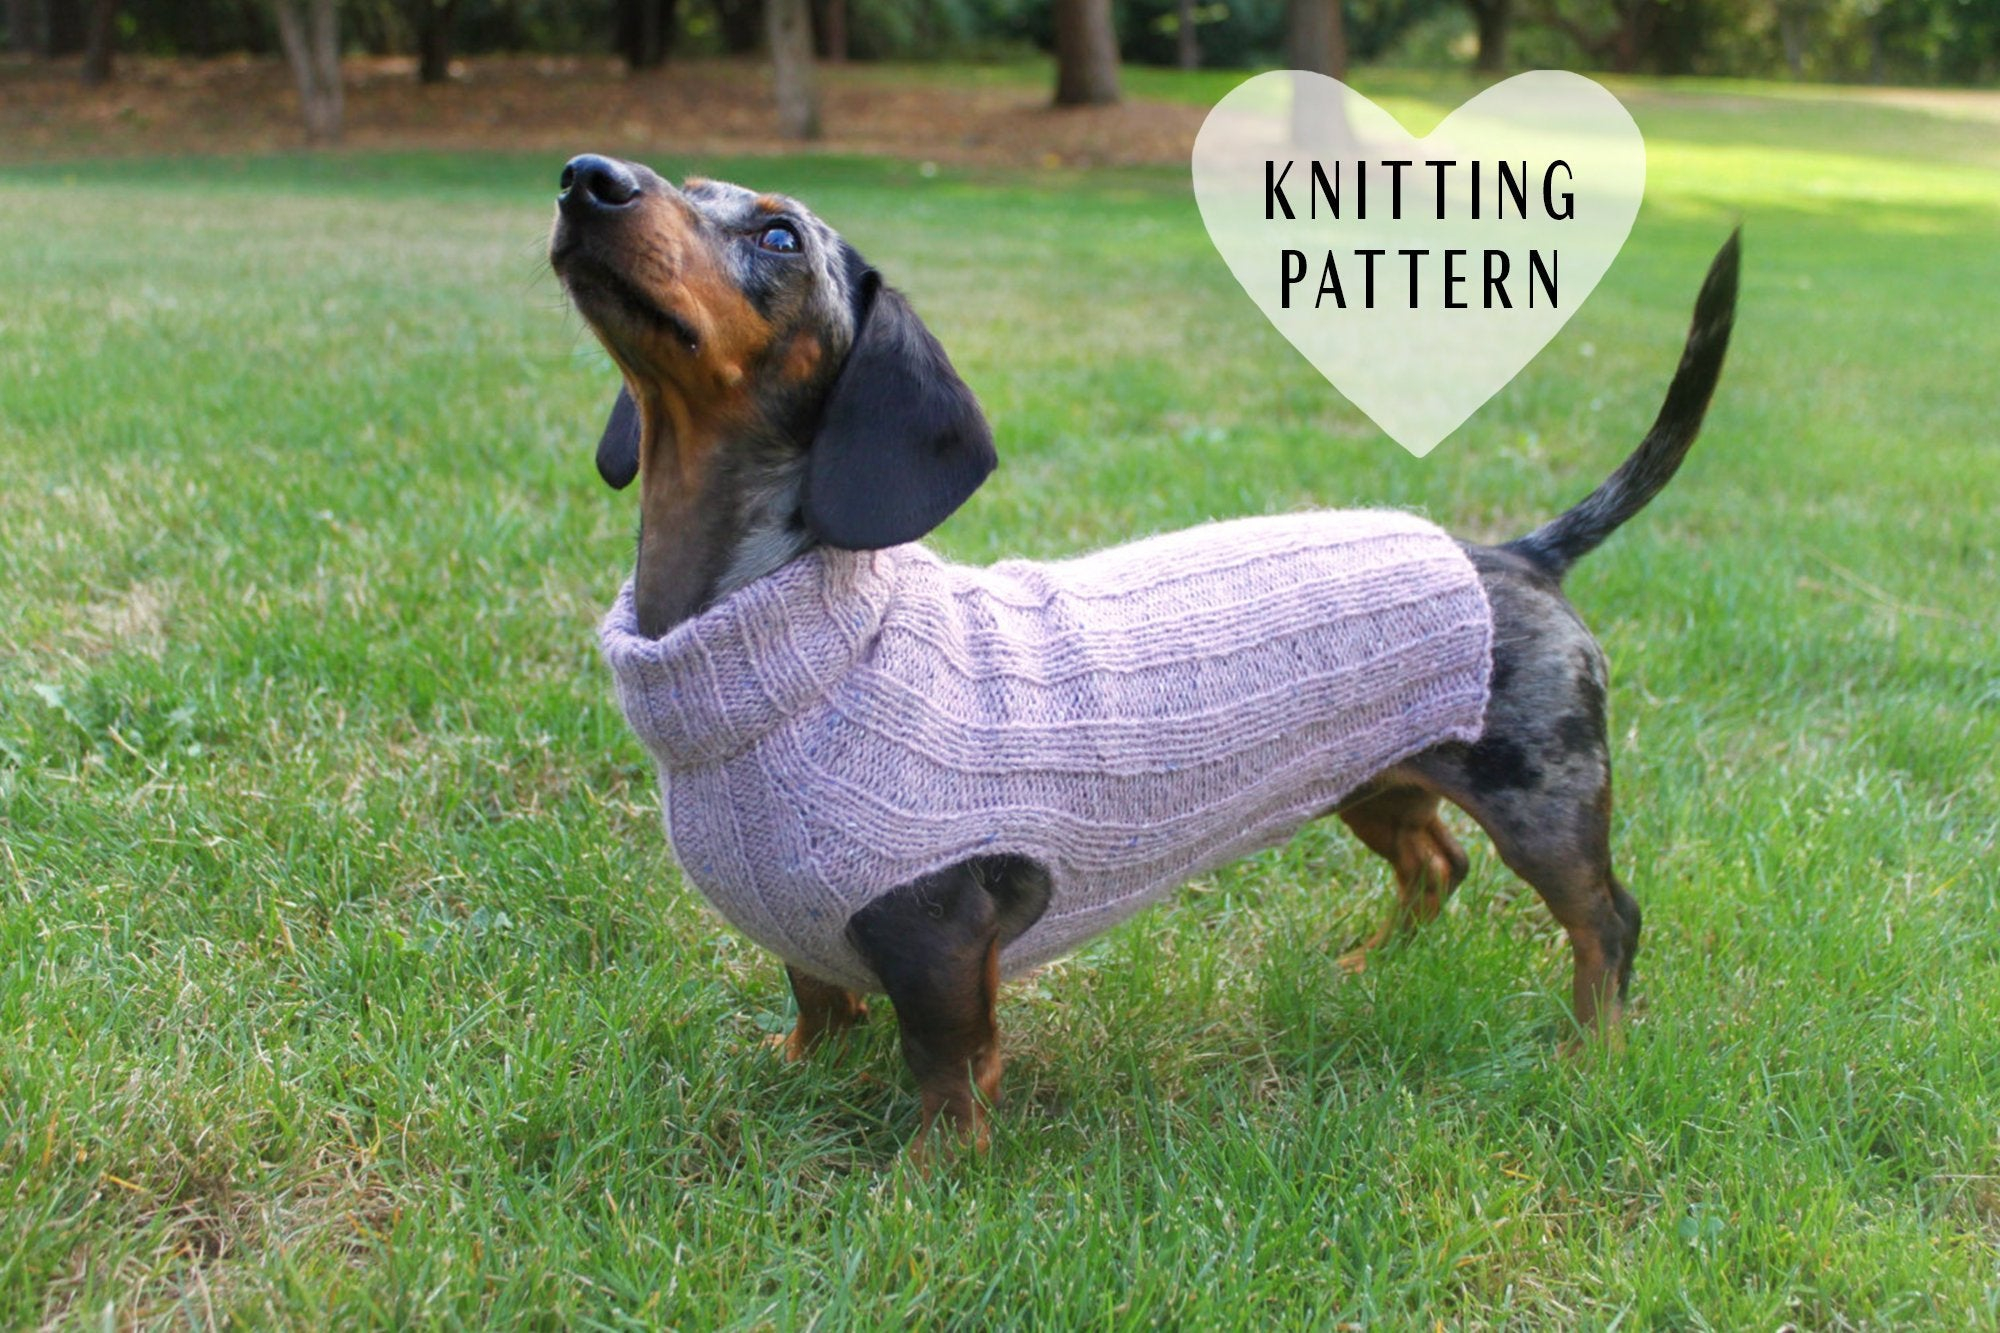 Dachshund Jumper Knitting Pattern Knitting Pattern Top Down Mini Dachshund Dog Sweater Pet Clothes Dogs Little Dog Diy Project Knit Knitted Doxie Wiener Dog Pets